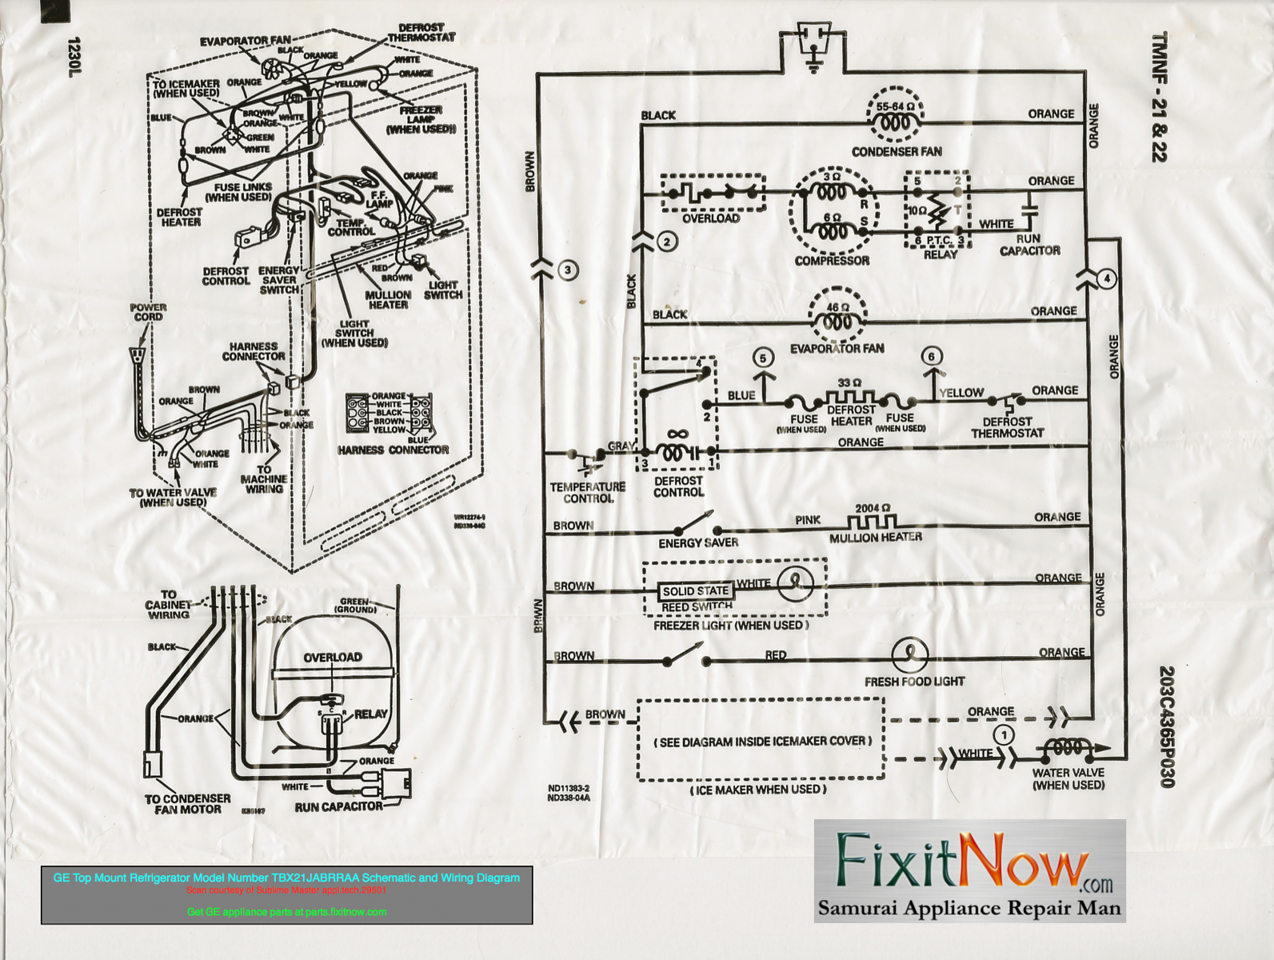 4904374061_e8eb3df6c6_o X2 wiring diagrams and schematics appliantology lg refrigerator wiring diagram at cos-gaming.co